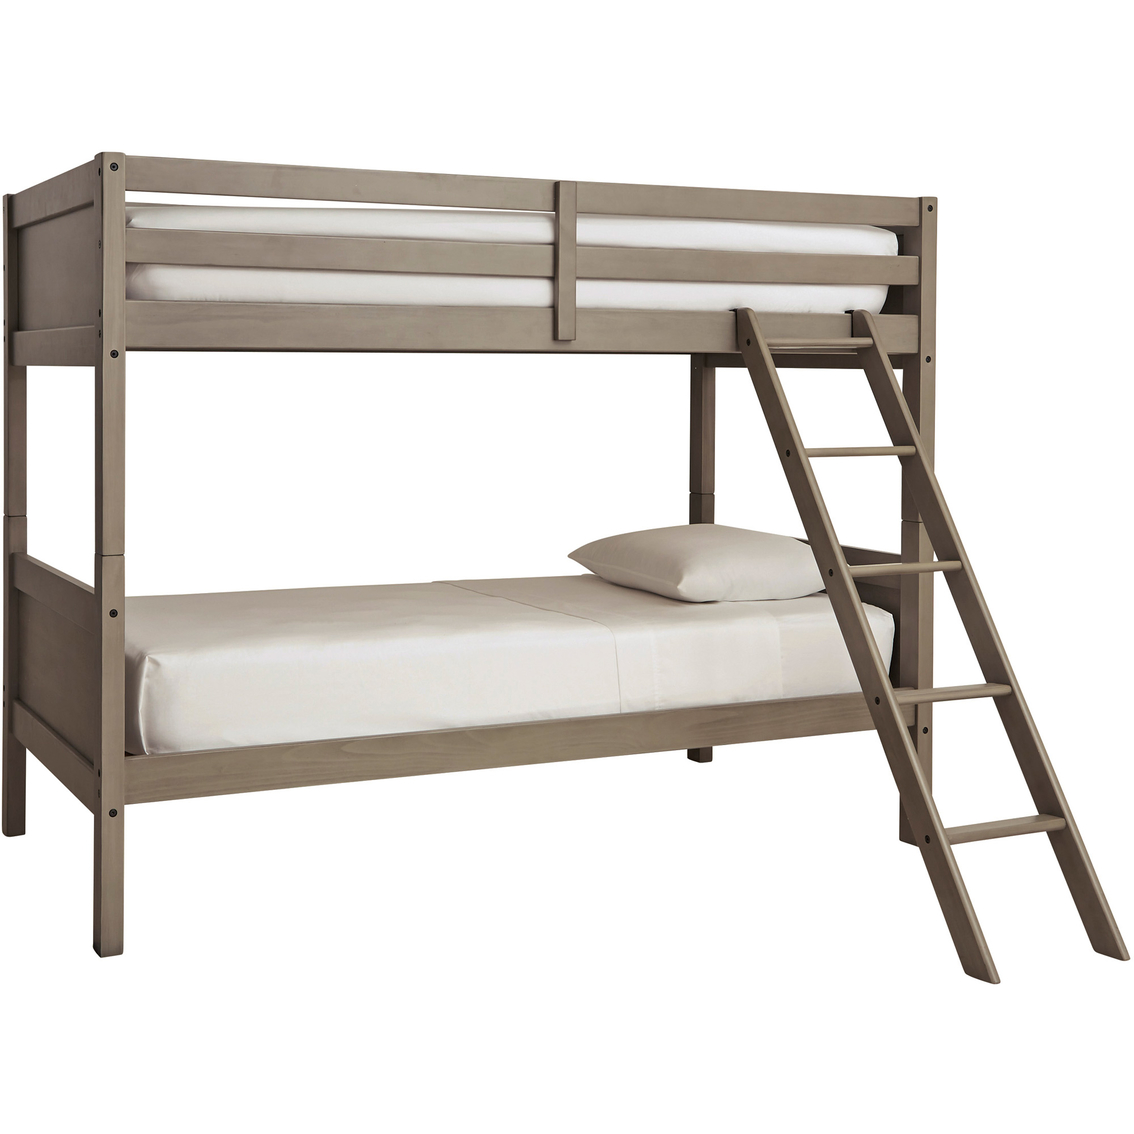 Signature Design By Ashley Lettner Twin Over Twin Bunk Bed With Ladder Beds Furniture Appliances Shop The Exchange